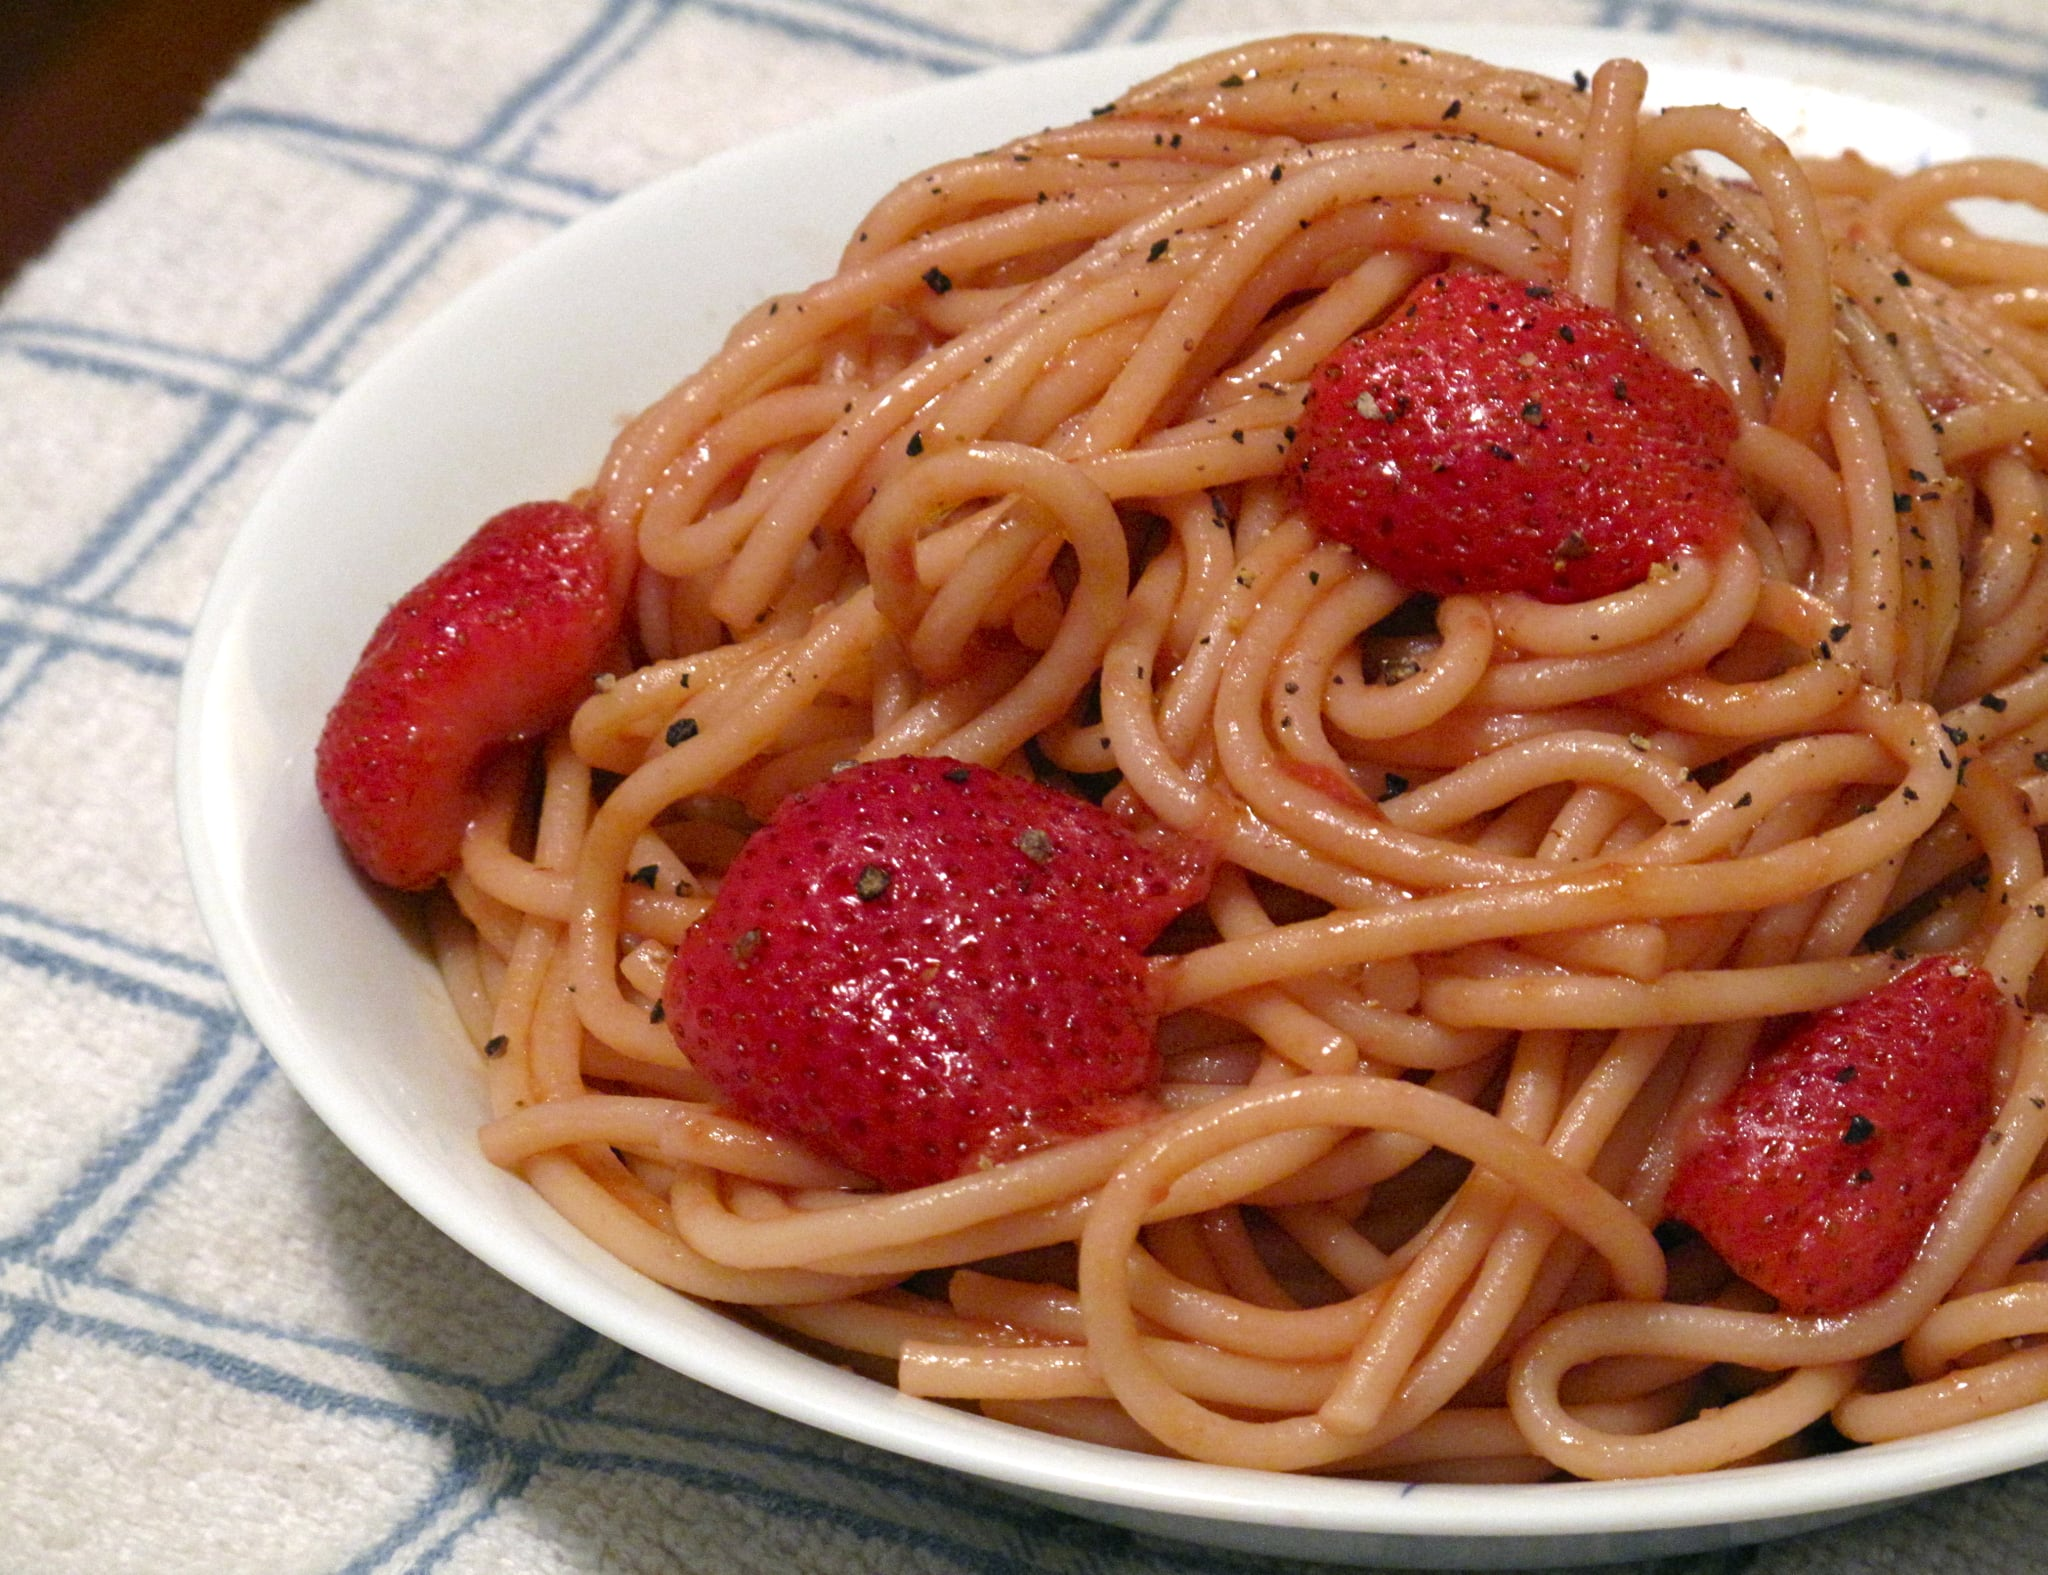 PopsugarLivingFast And EasyRecipe For Spaghetti With StrawberriesBerry Tempting: Spaghetti With StrawberriesMay 11, 2010 by Susannah Chen127 SharesChat with us on Facebook Messenger. Learn what's trending across POPSUGAR.It's common knowledge that strawberries are a natural addition to crumb cakes, parfaits, and cocktails. Yet I've always wanted to push the berry's boundaries, so this weekend I took the fruit to another level with a savory application. Spaghetti and strawberries aren't a typical pairing, which is exactly why this recipe, courtesy of Manhattan restaurant Sfoglia, caught my eye. I gave it a try, despite secret fears that the end result would disappoint. Thankfully, it didn't! Tomatoes, like rhubarb, have an acidity that's on par with strawberries, and a high-quality aged balsamic, which is more sweet than tart, helps to round out the flavors. Curious about the recipe? Then read more.Spaghetti with StrawberriesFrom Sfoglia RestaurantIngredients1 pound good-quality dried spaghetti (like Setaro)4 - 웹